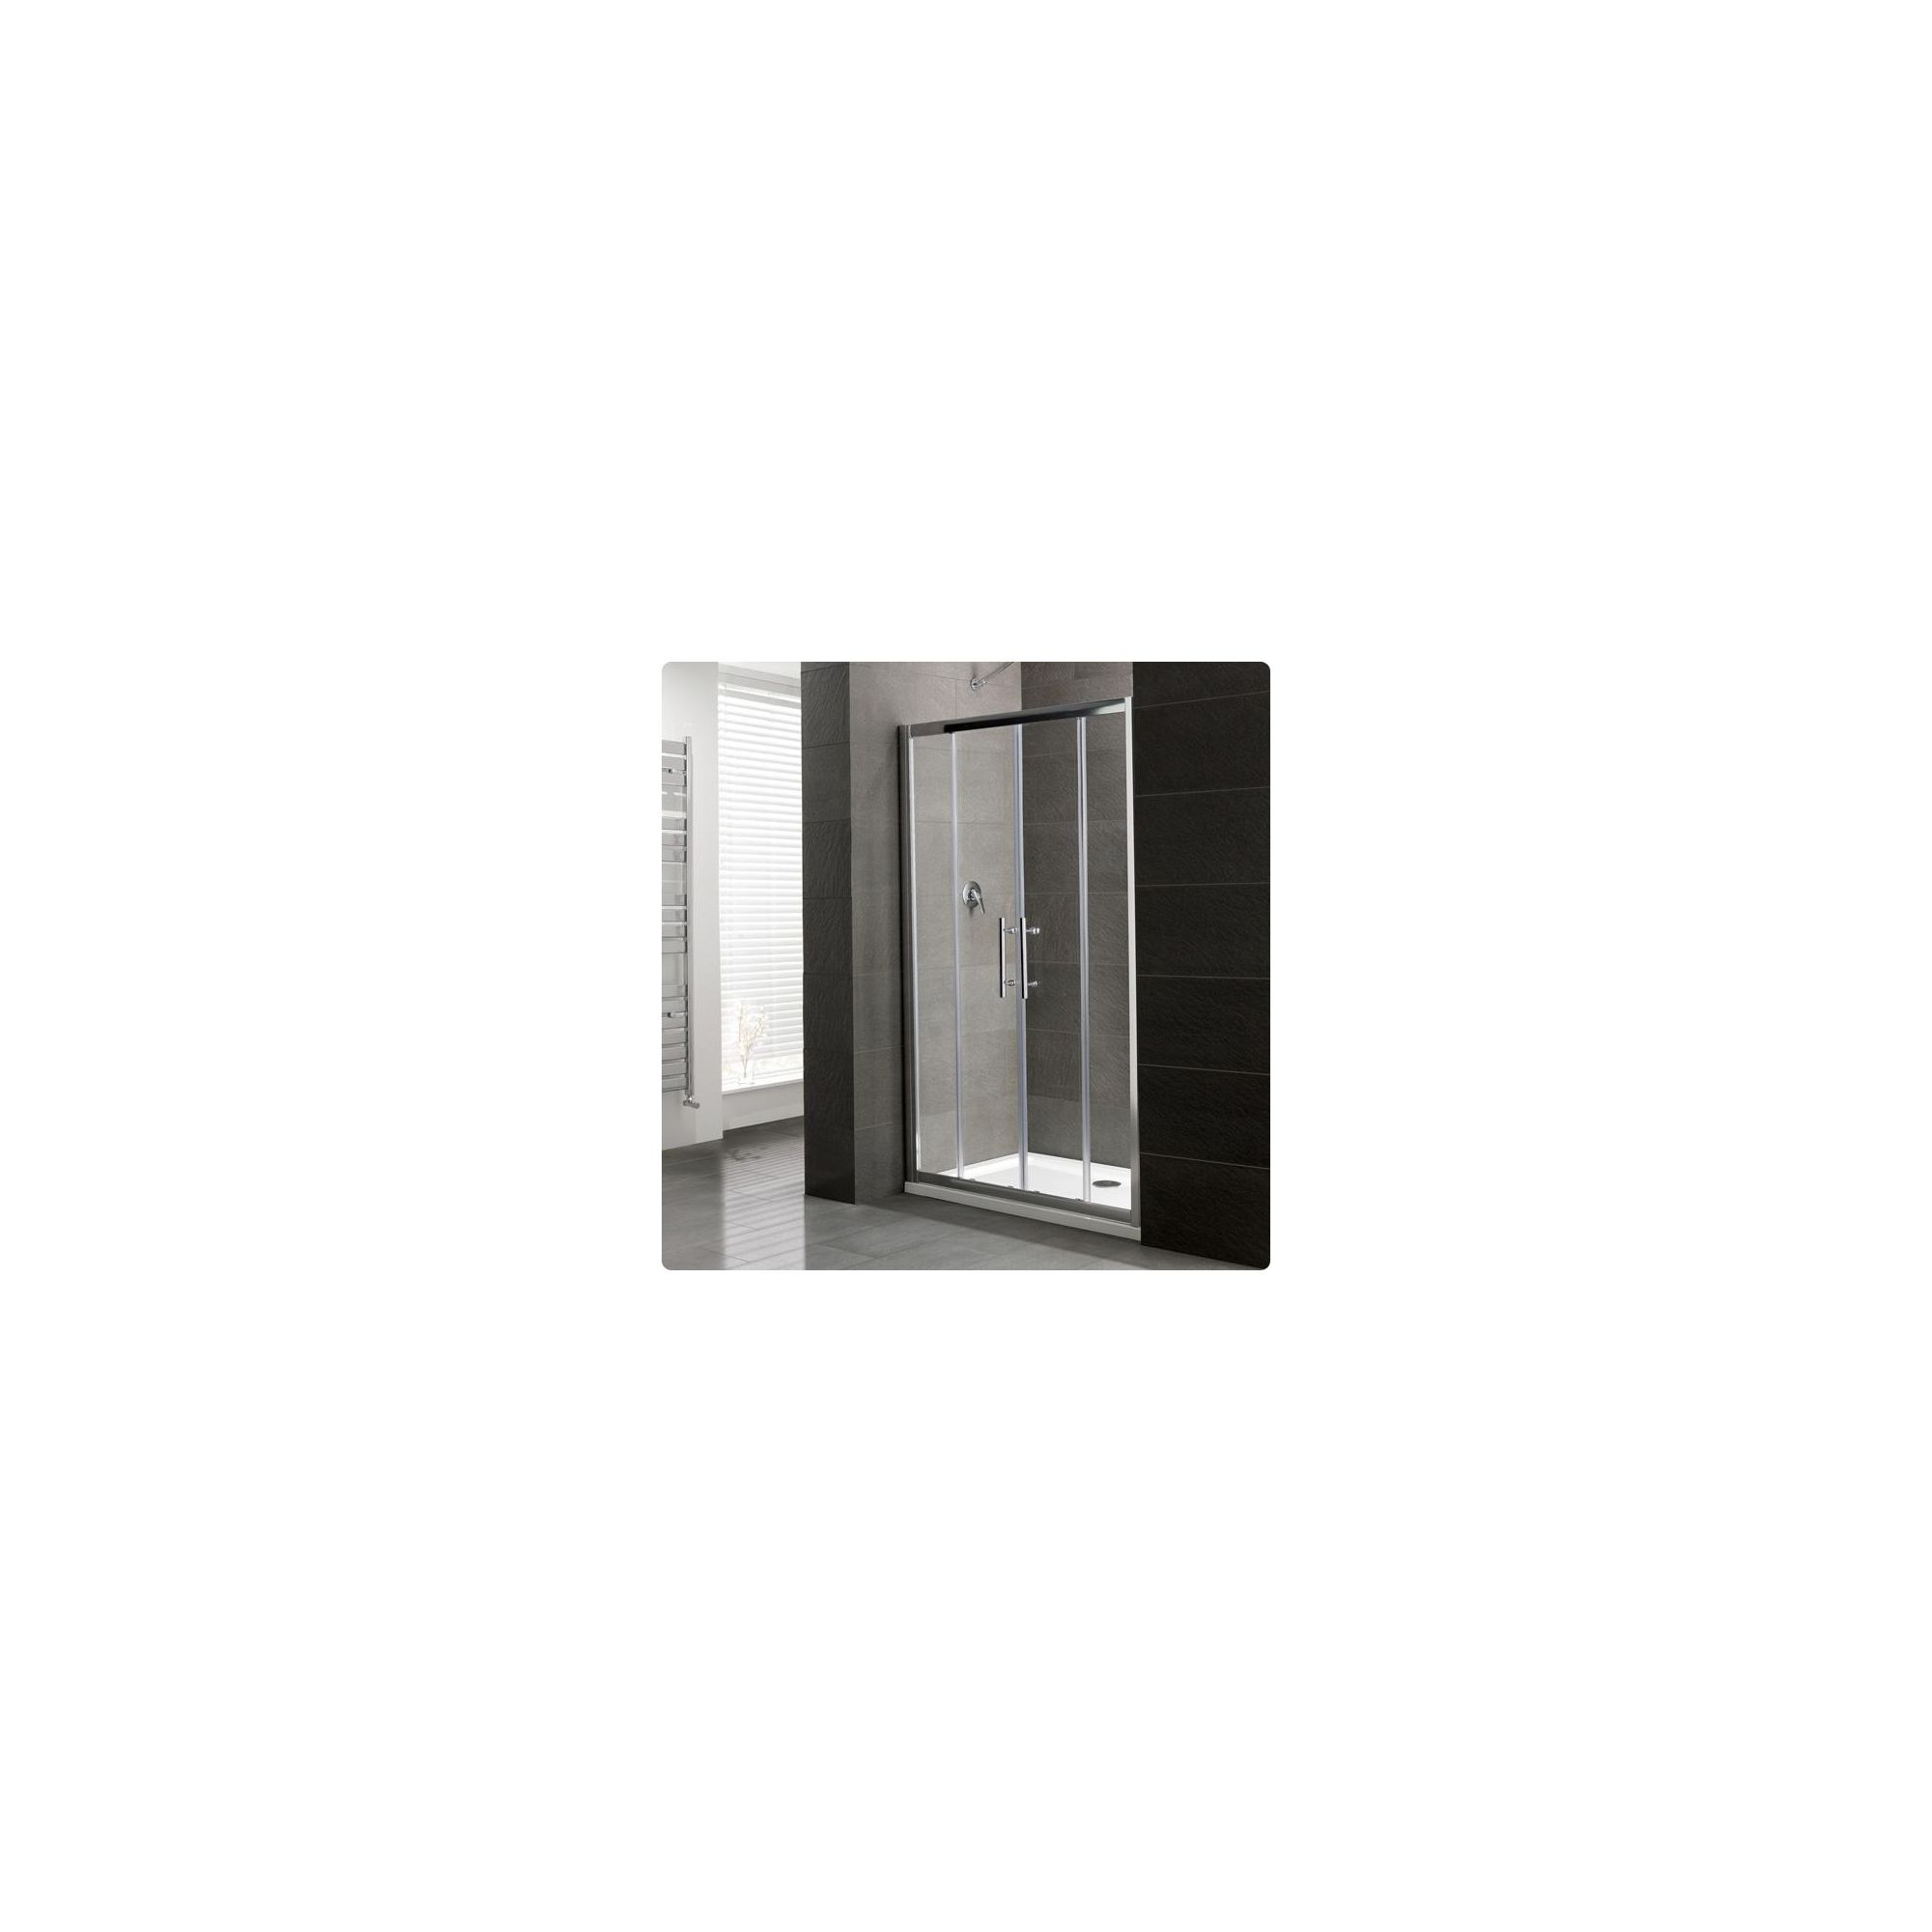 Duchy Select Silver Double Sliding Door Shower Enclosure, 1400mm x 800mm, Standard Tray, 6mm Glass at Tesco Direct